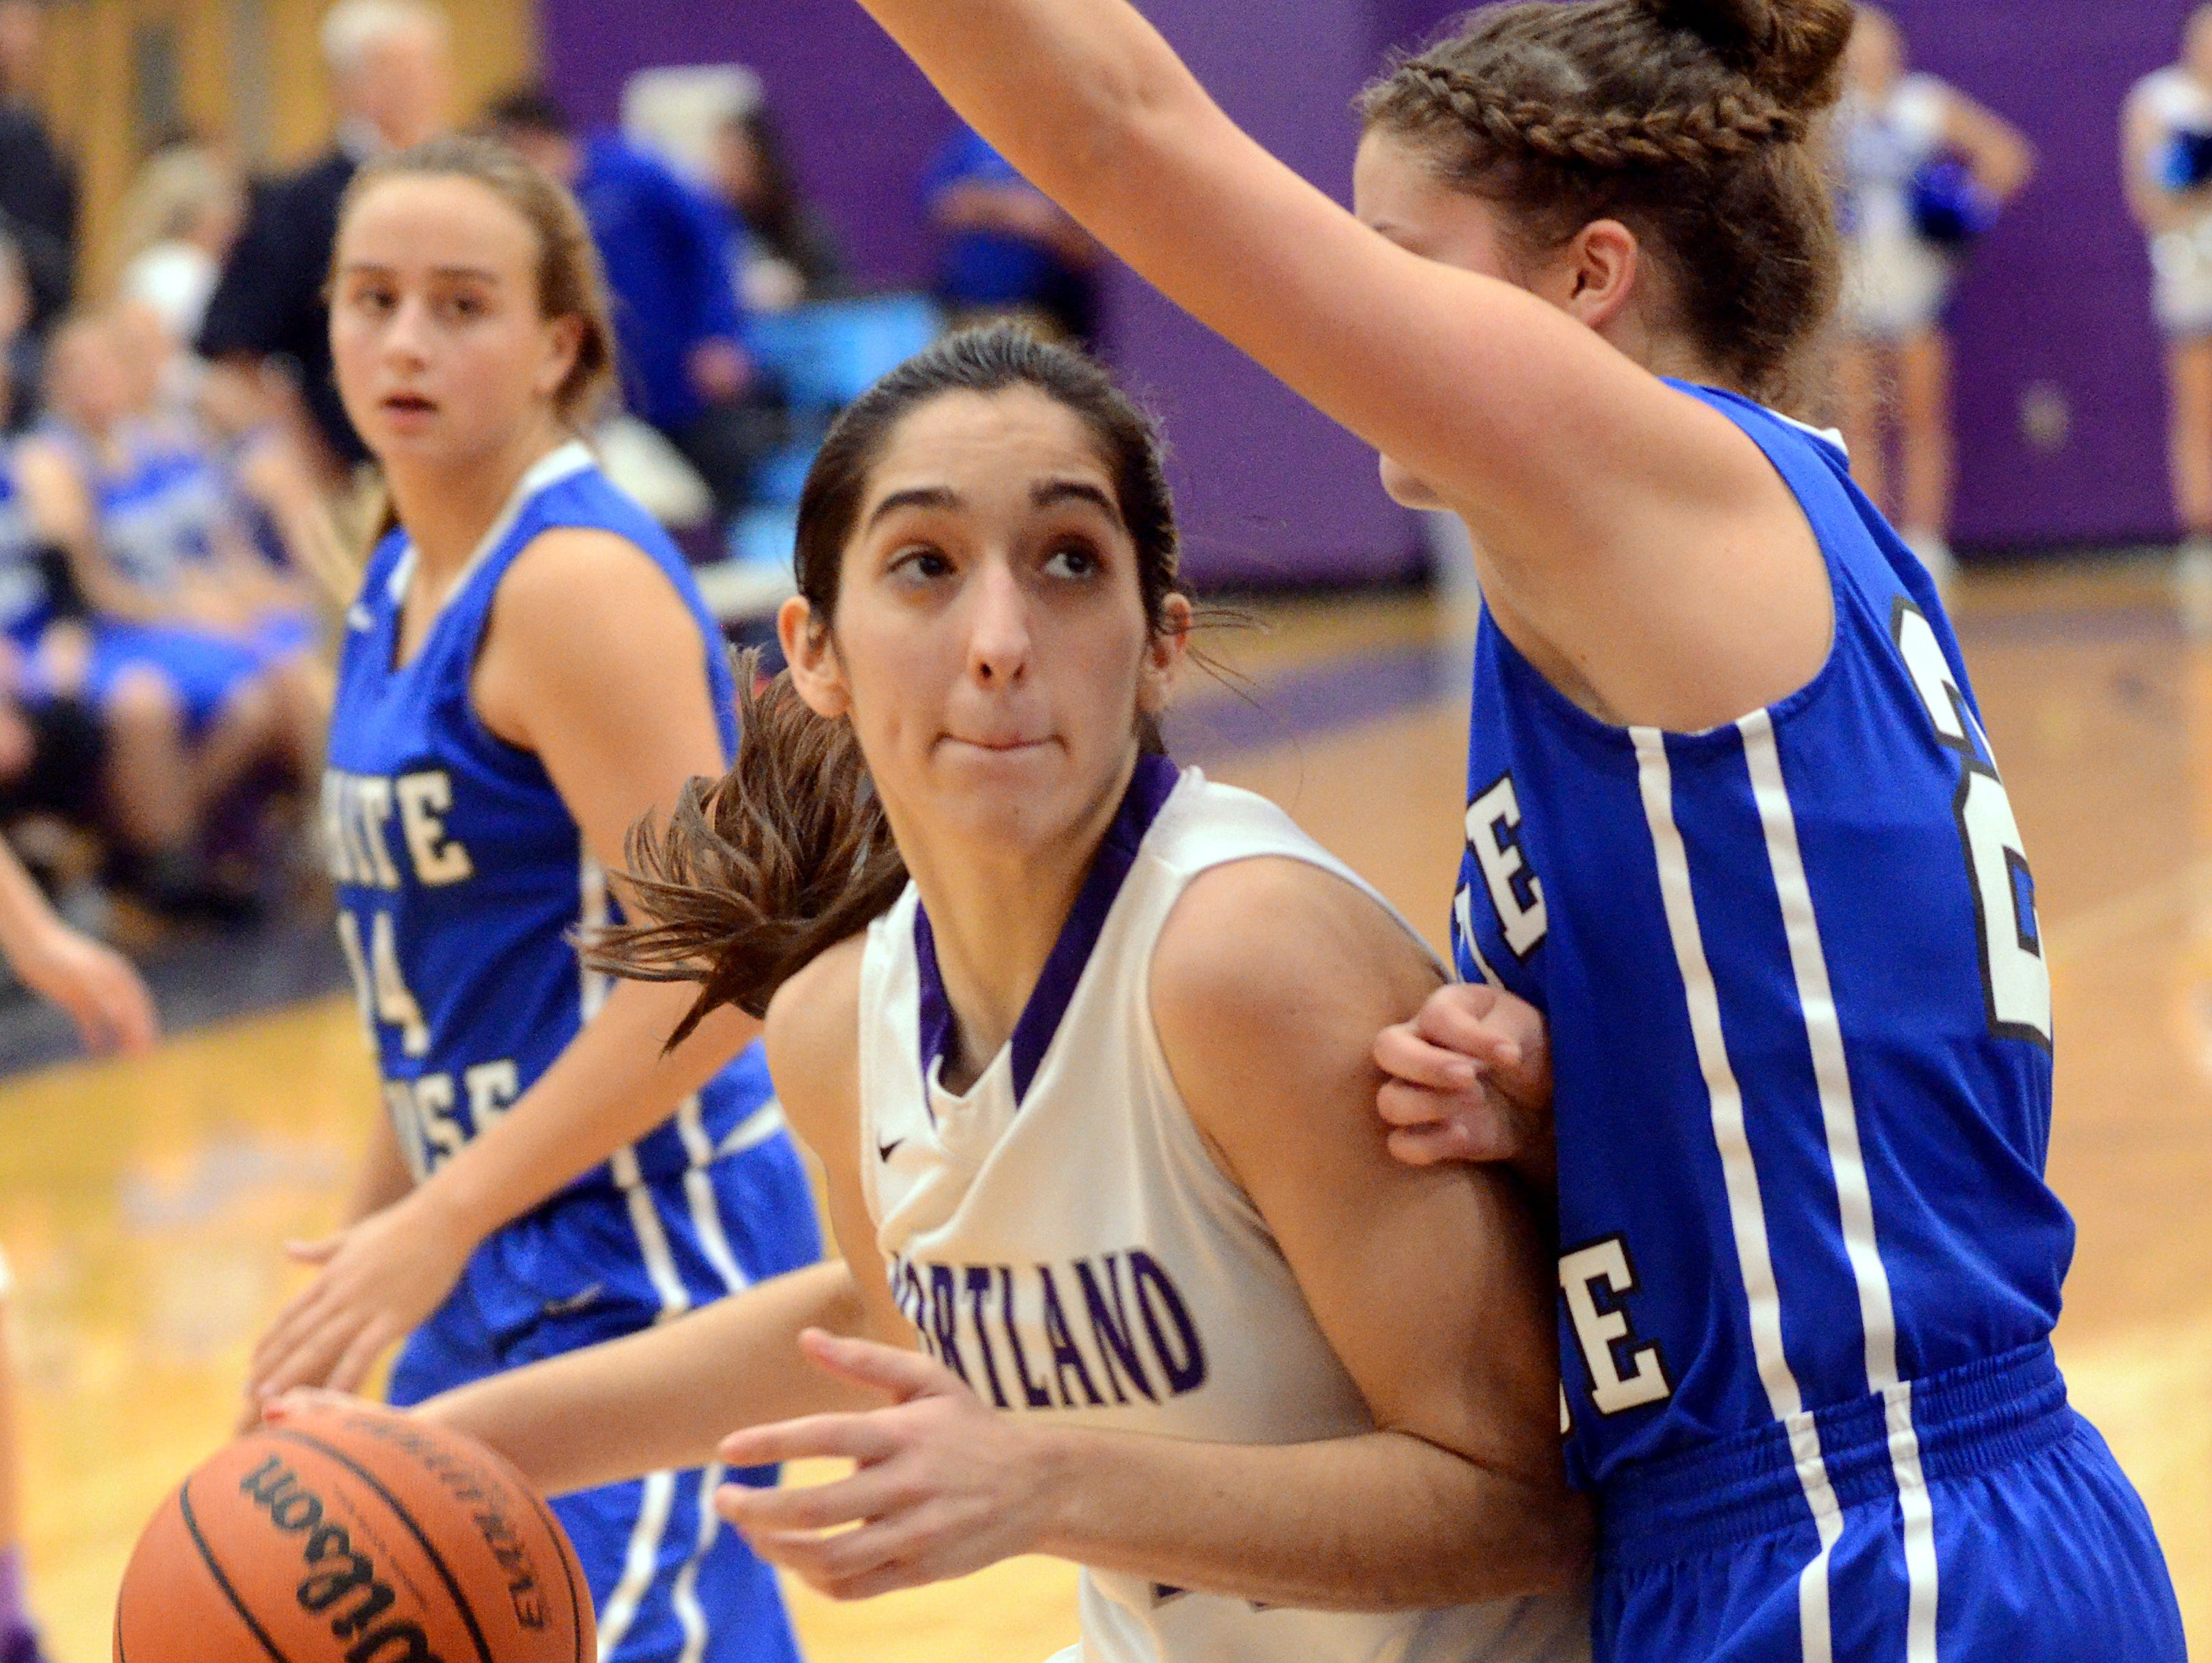 Portland High junior forward Mackenzie Trouten maneuvers inside as White House junior Bailey Hutchison defends and as Lady Devil sophomore McKenzie Vaughn looks on. Trouten scored a career-high 22 points in the Lady Panthers' 67-40 victory on Tuesday evening.